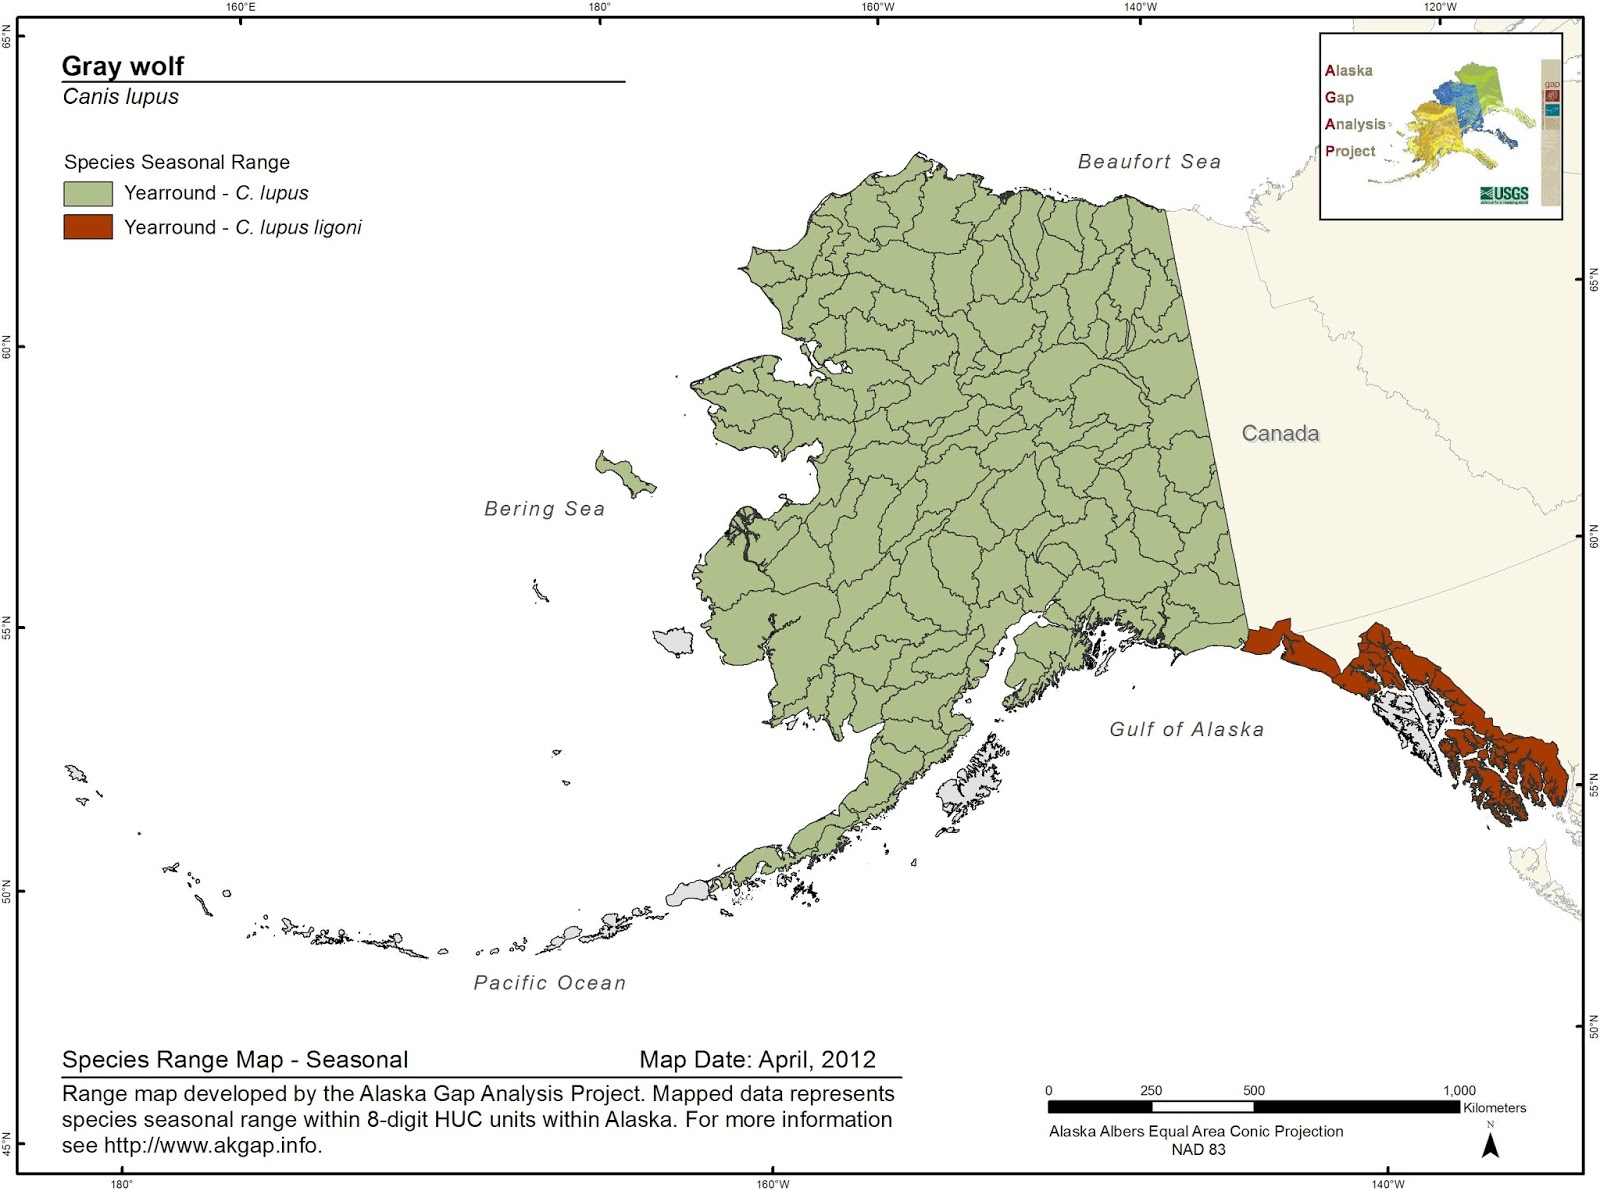 Range of the Grey Wolf and its subspecies in Alaska